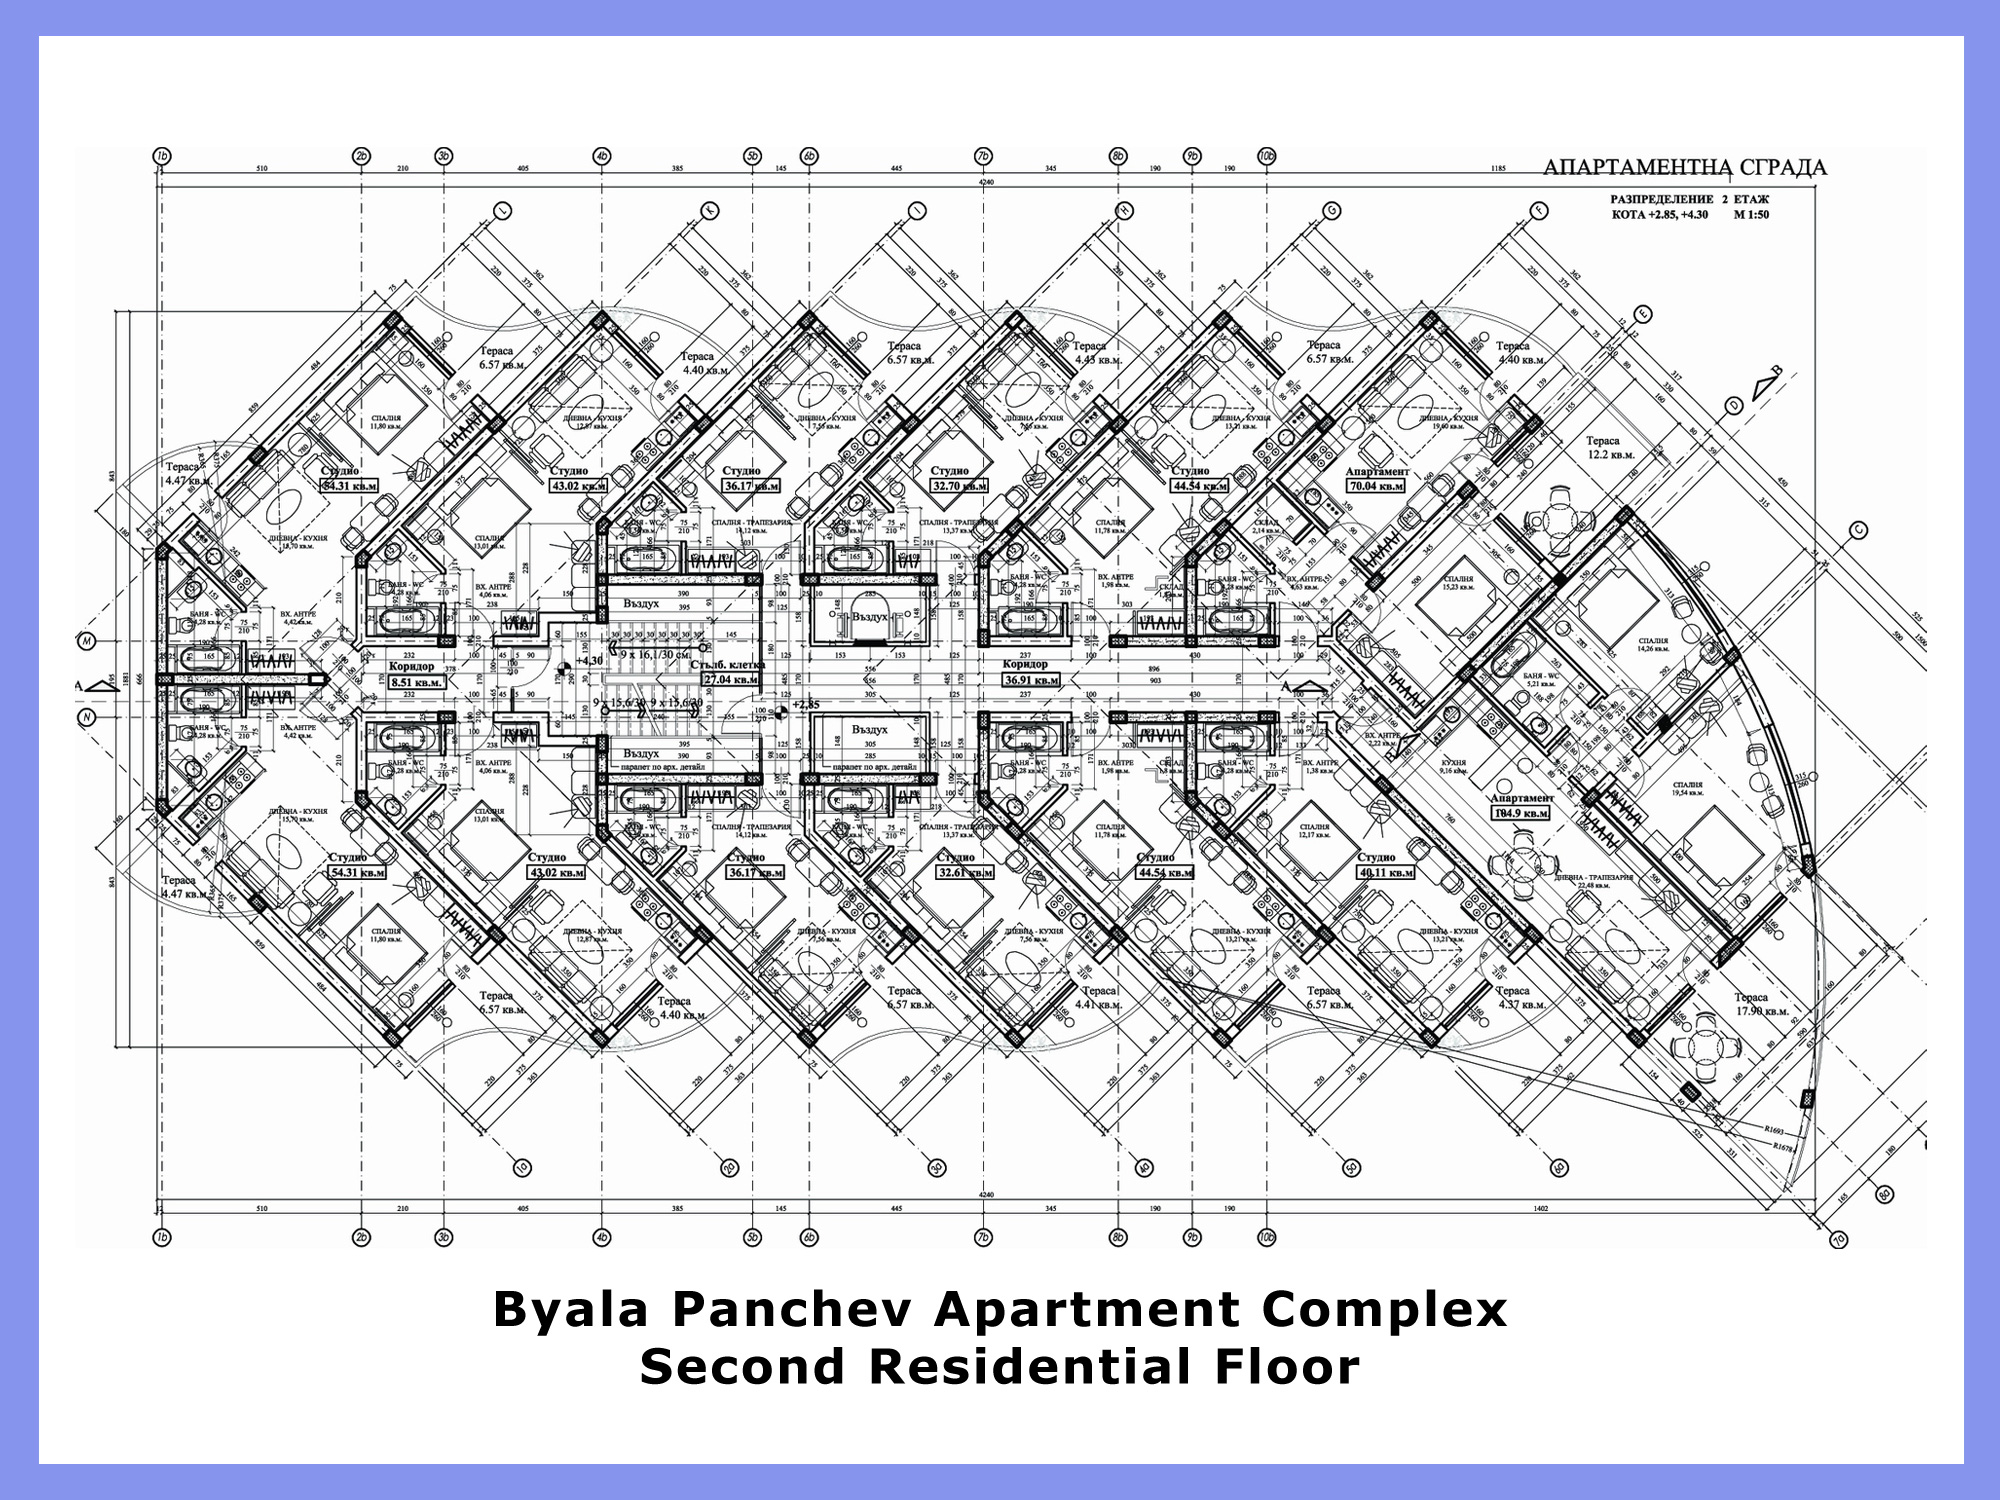 Byala panchev apartment complex for Apartment complex building plans